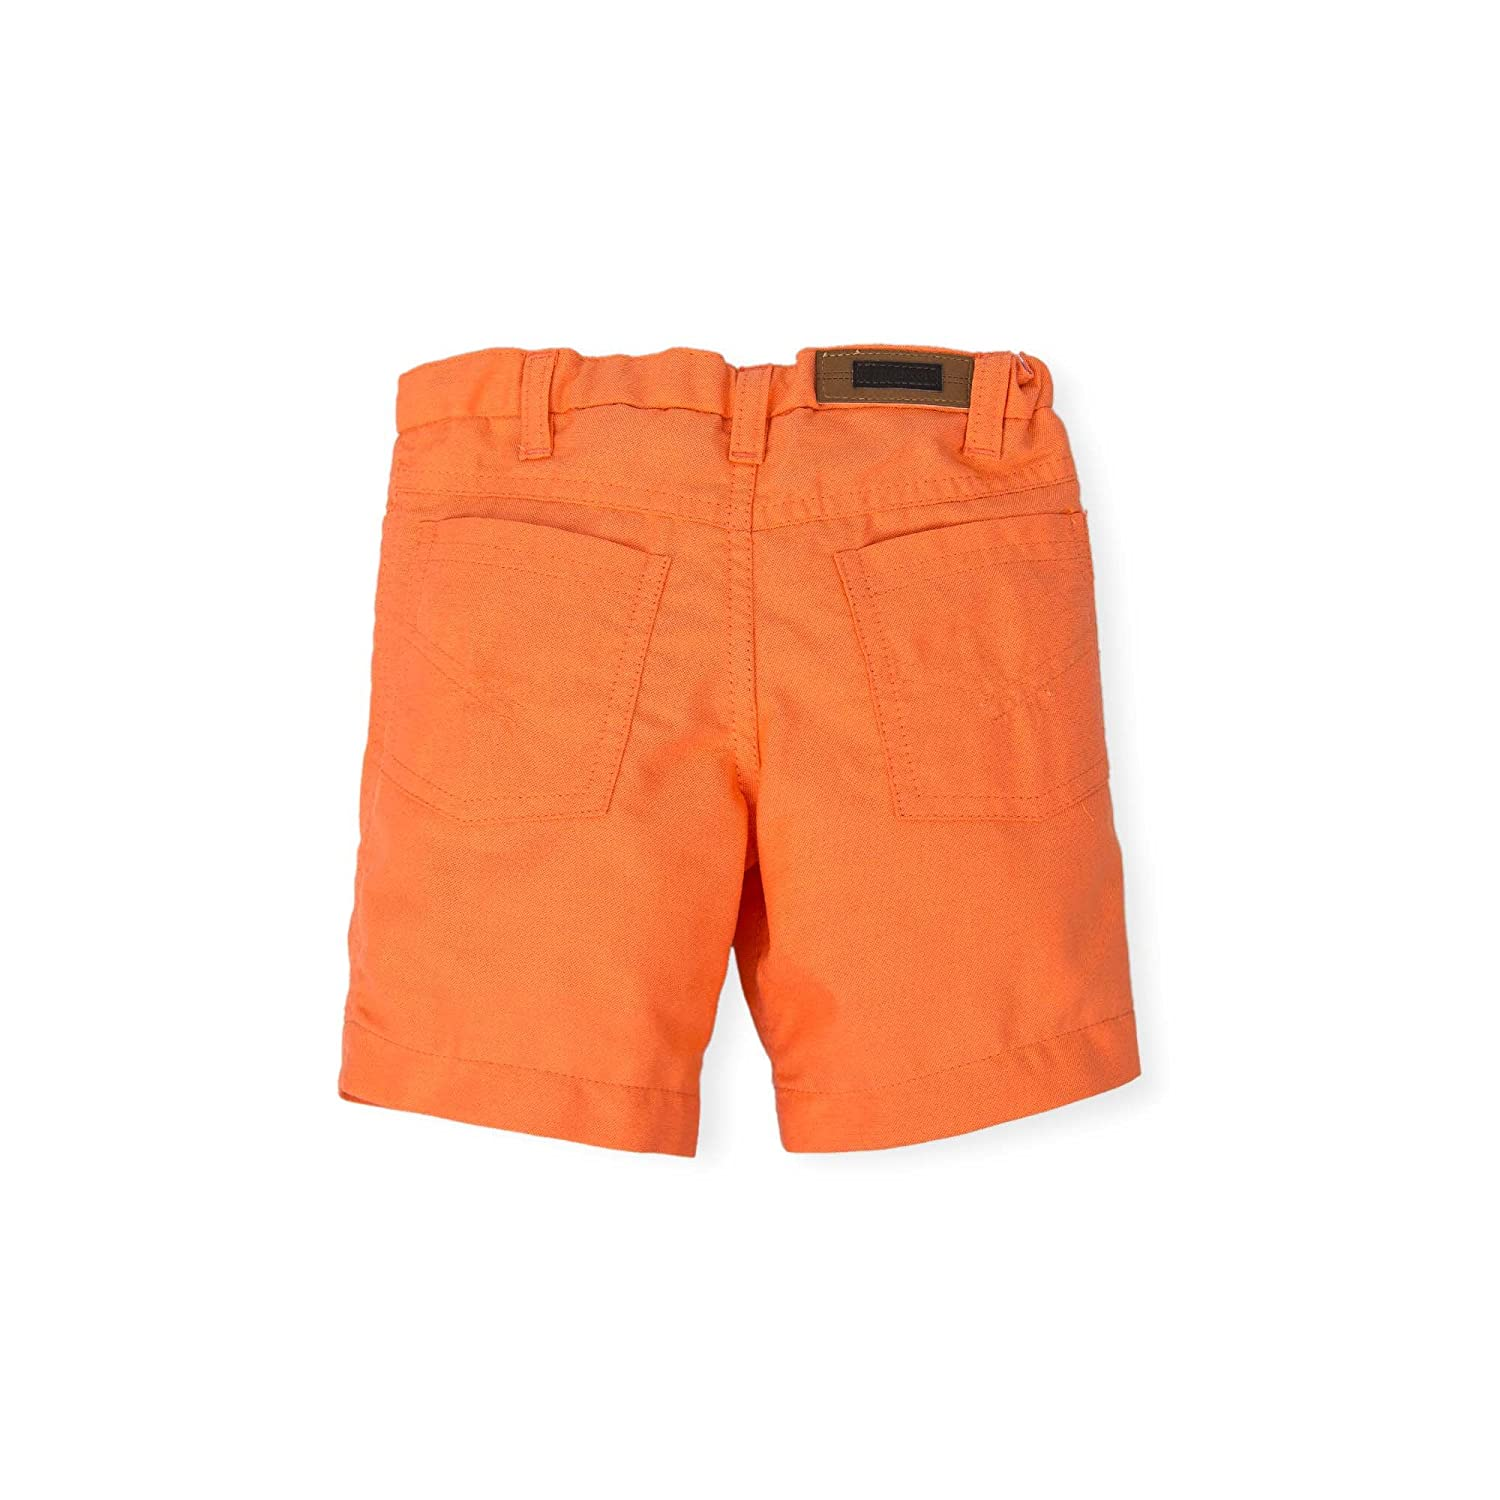 Tutto Piccolo 4328NS18 Pantalones, Naranja (Orange O00), 12 años ...